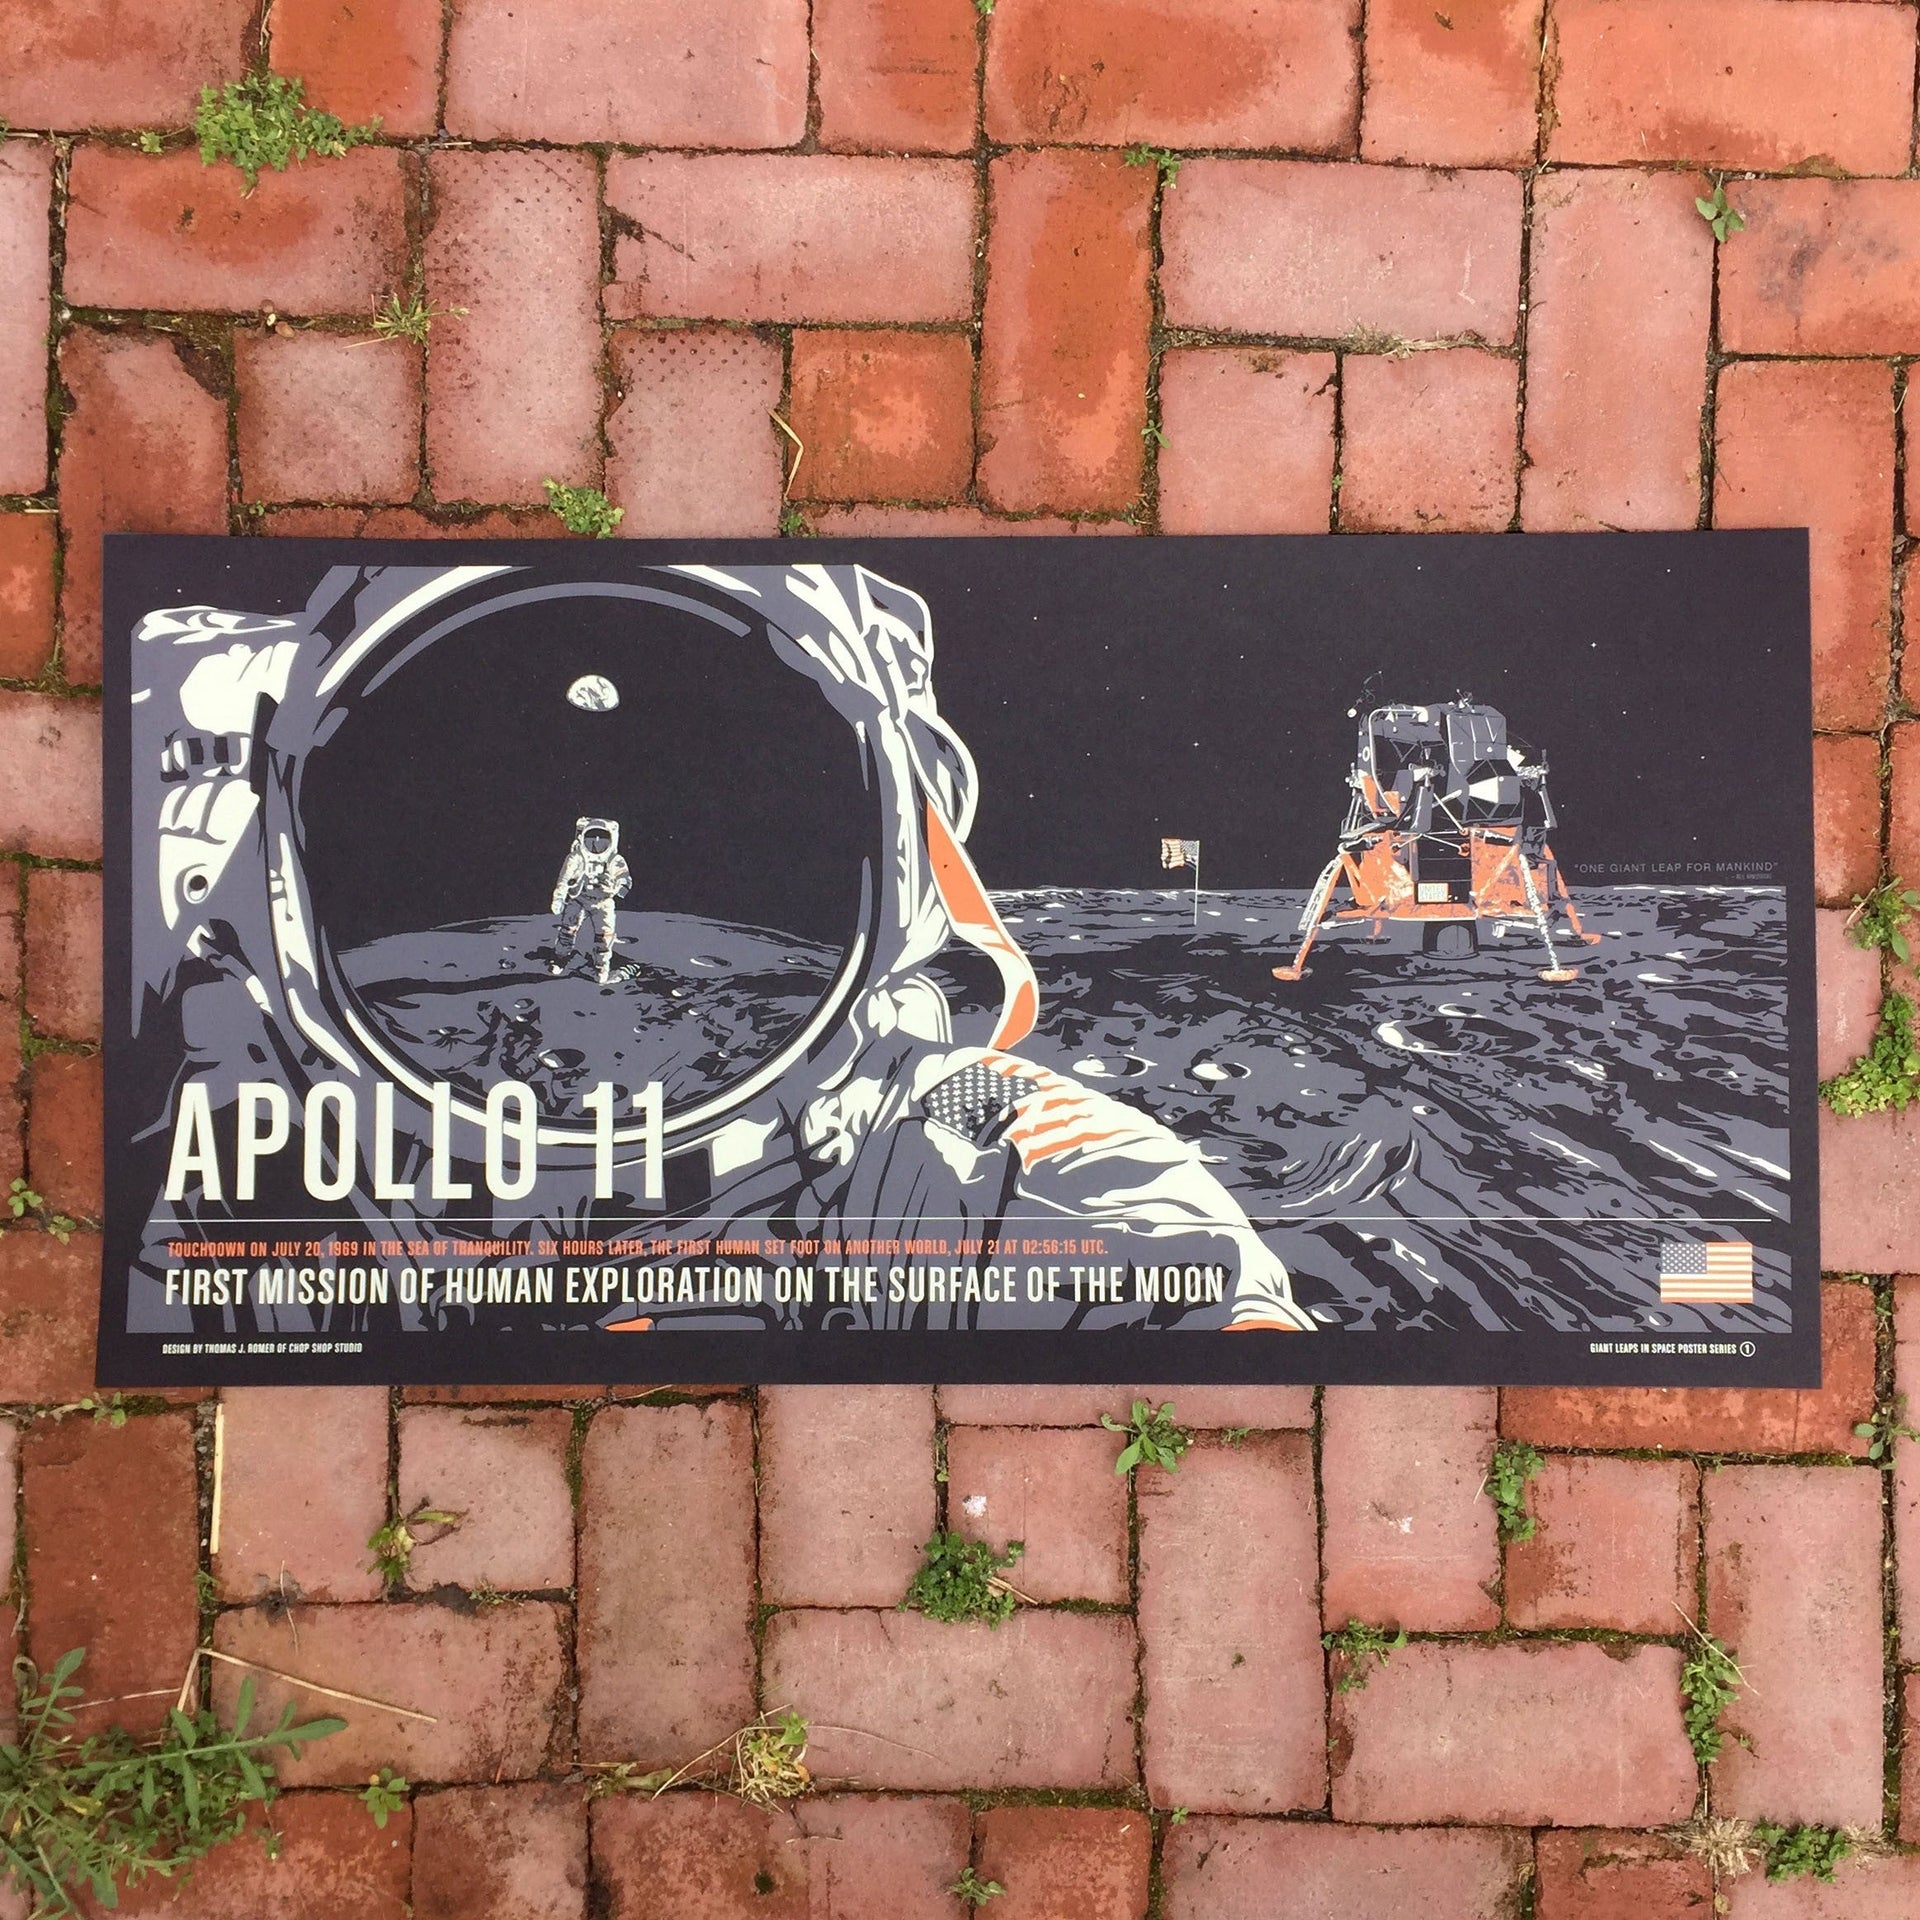 Apollo 11 from the Giant Leaps in Space Print Series